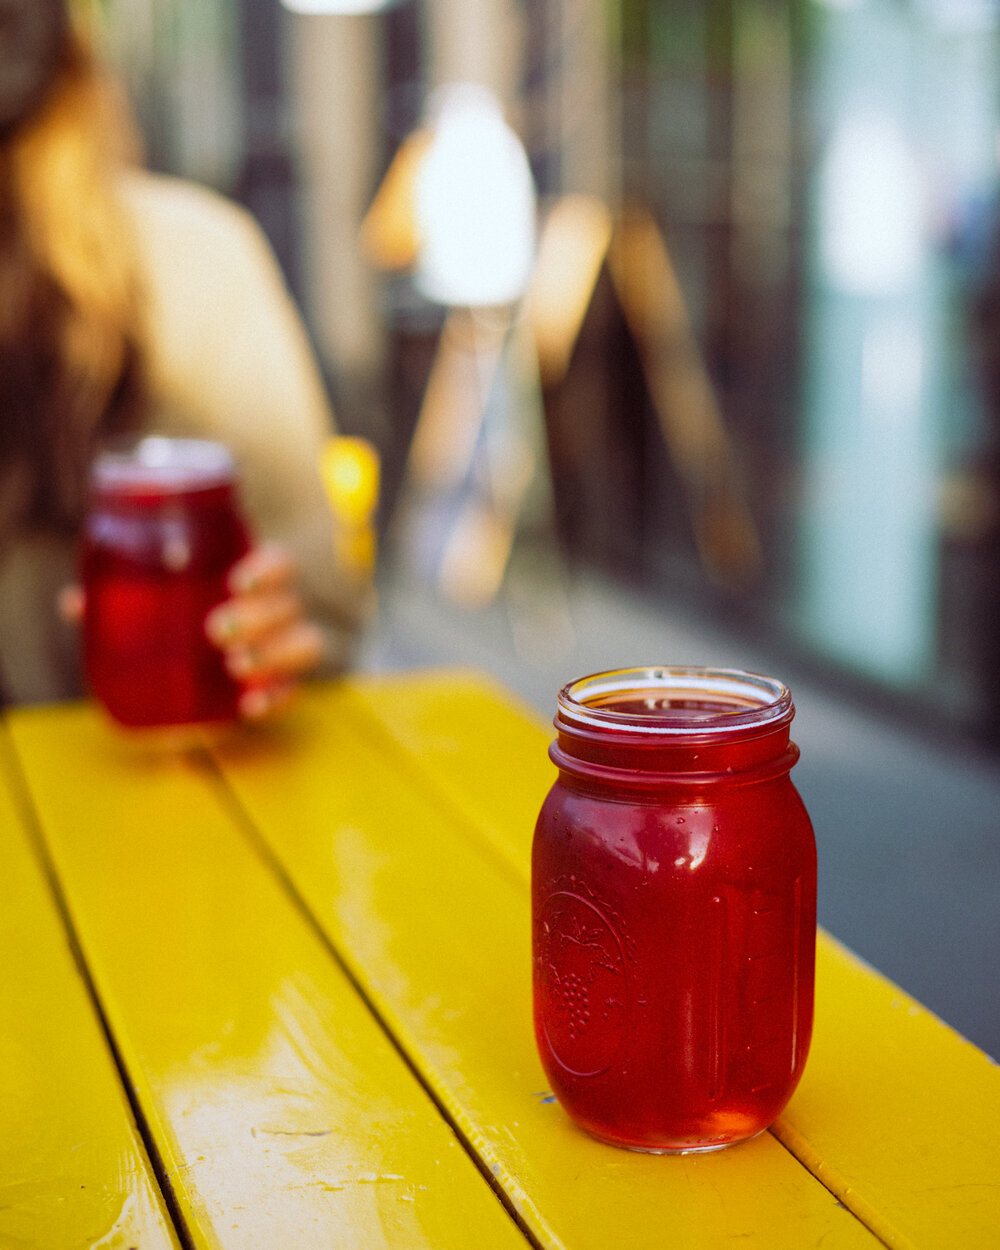 Rachel Off Duty: Two Bright Pink Beers in Mason Jars on a Yellow Table